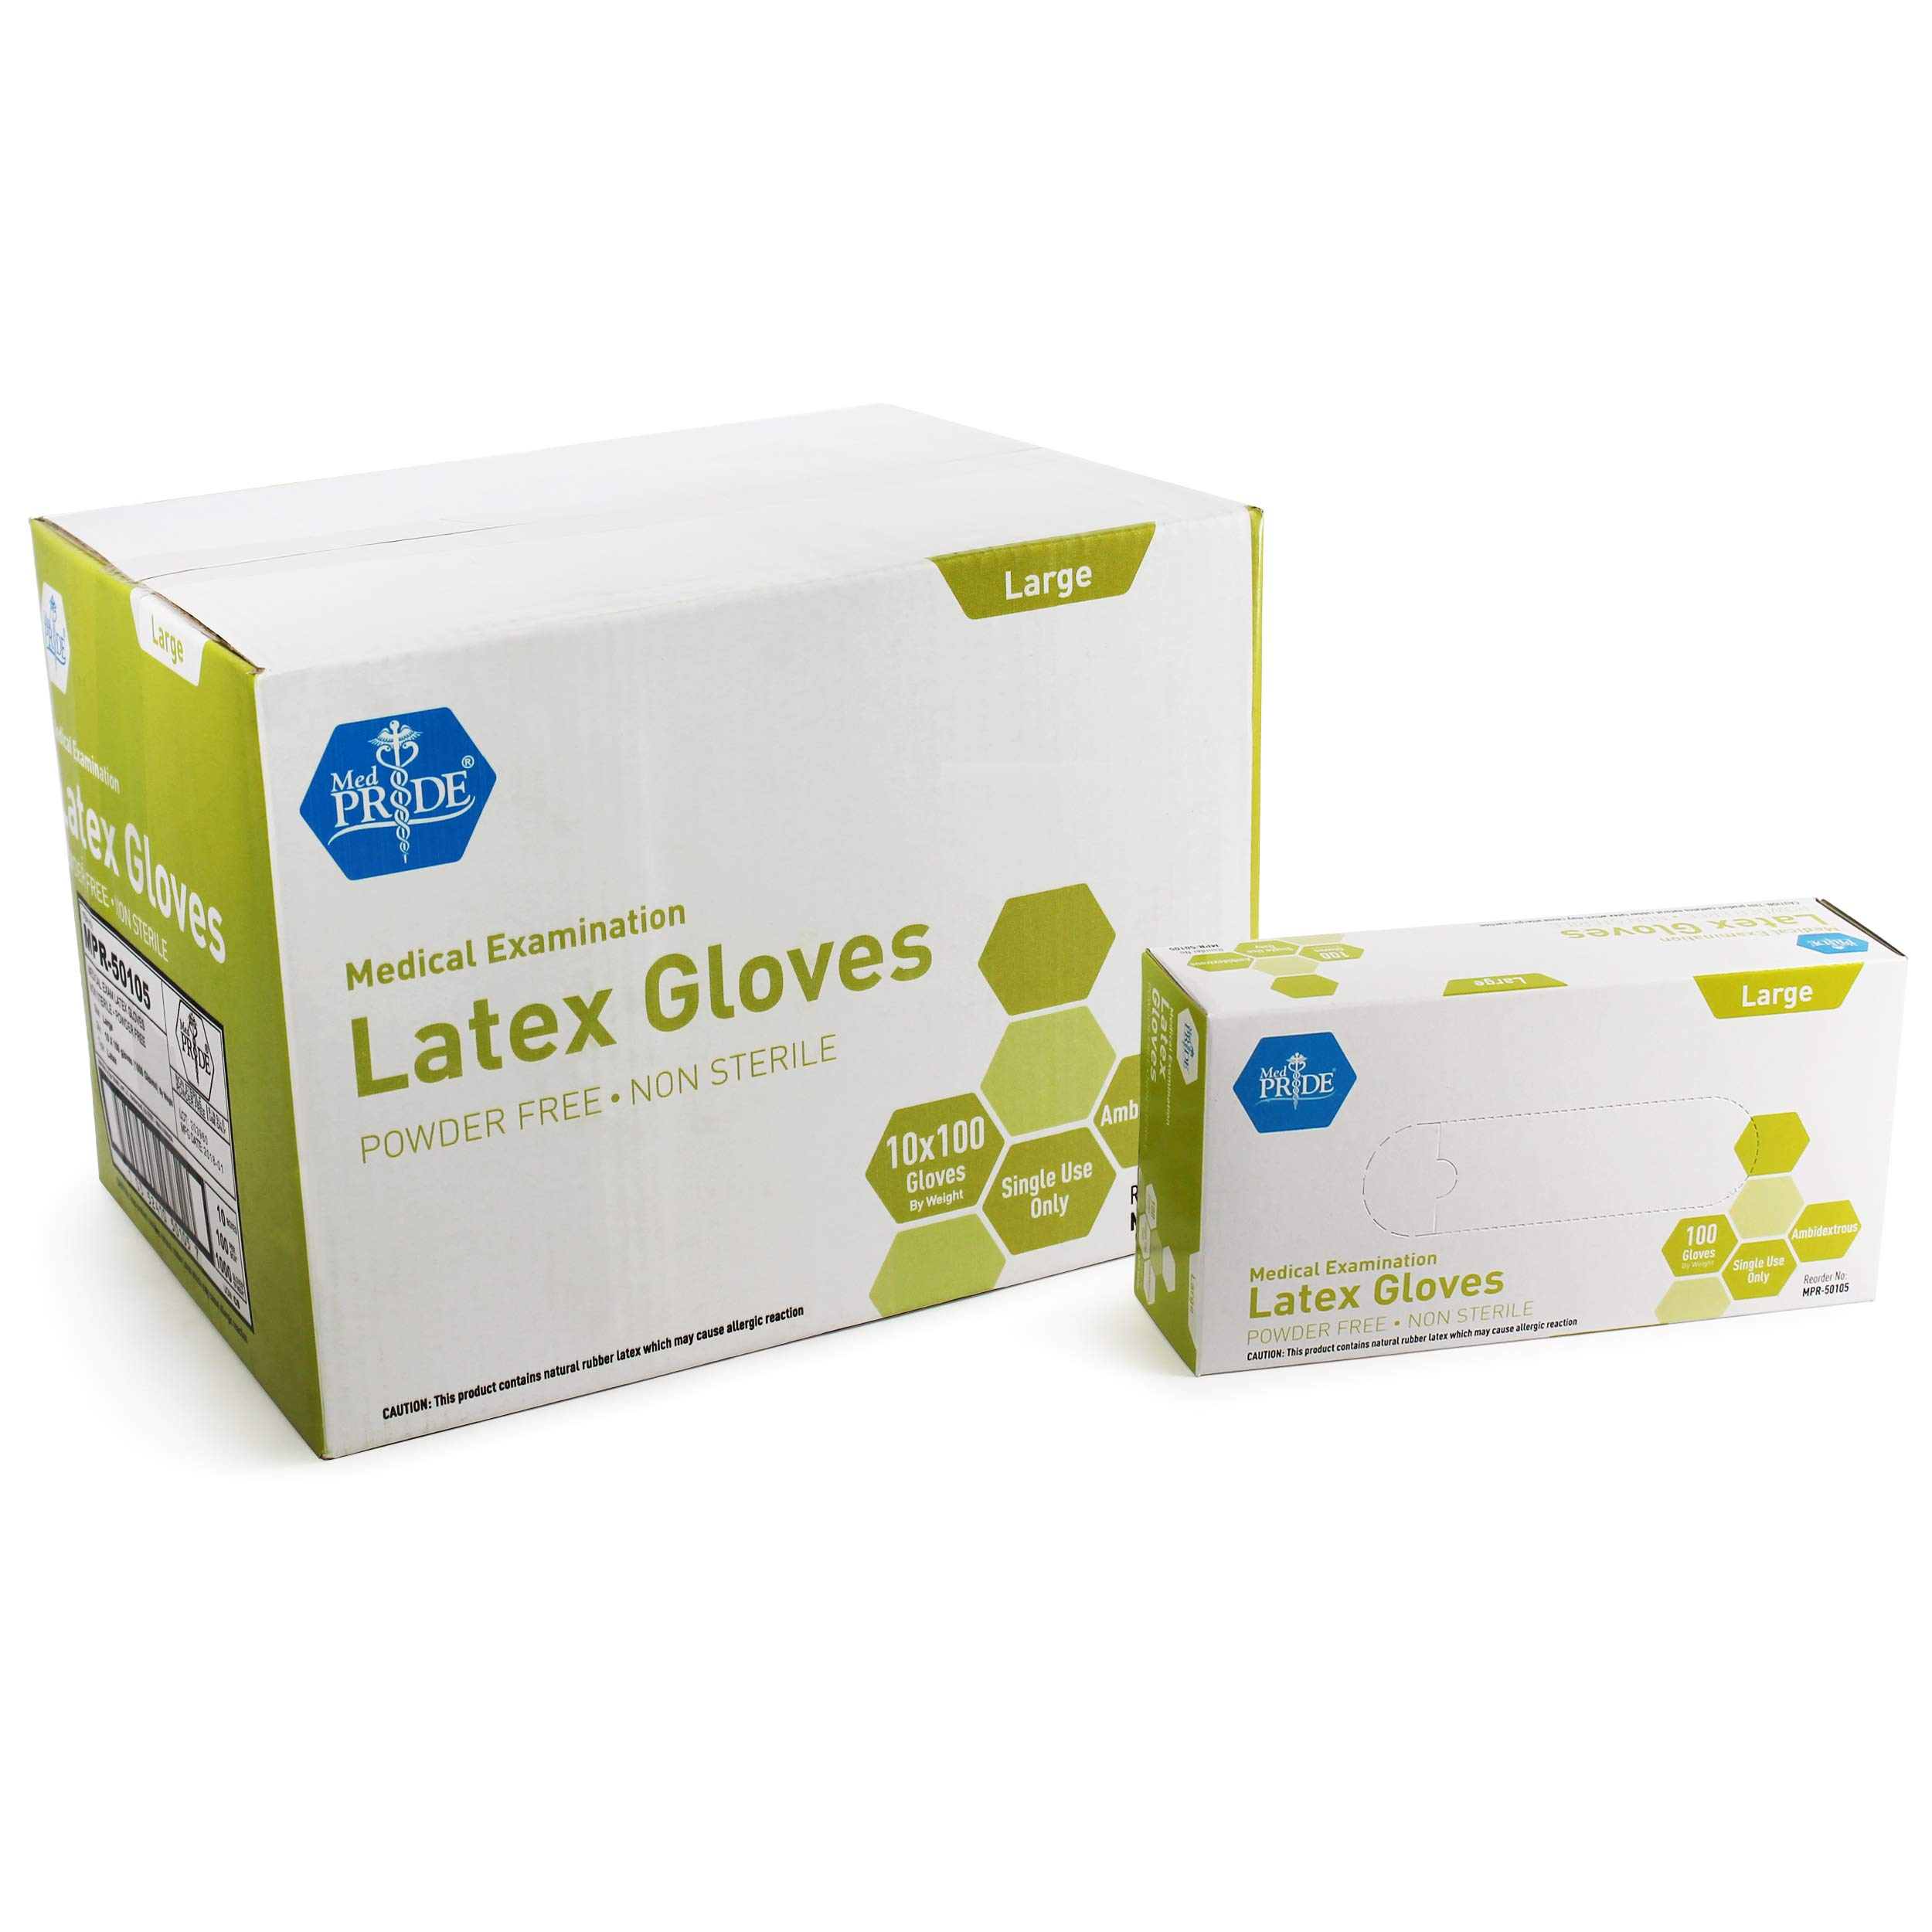 Medpride Medical Exam Latex Gloves| 5 mil Thick, Large Case of 1000| Powder-Free, Non-Sterile, Heavy Duty Exam Gloves| Professional Grade for Hospitals, Law Enforcement, Food Vendors, Tattoo Artists by MED PRIDE